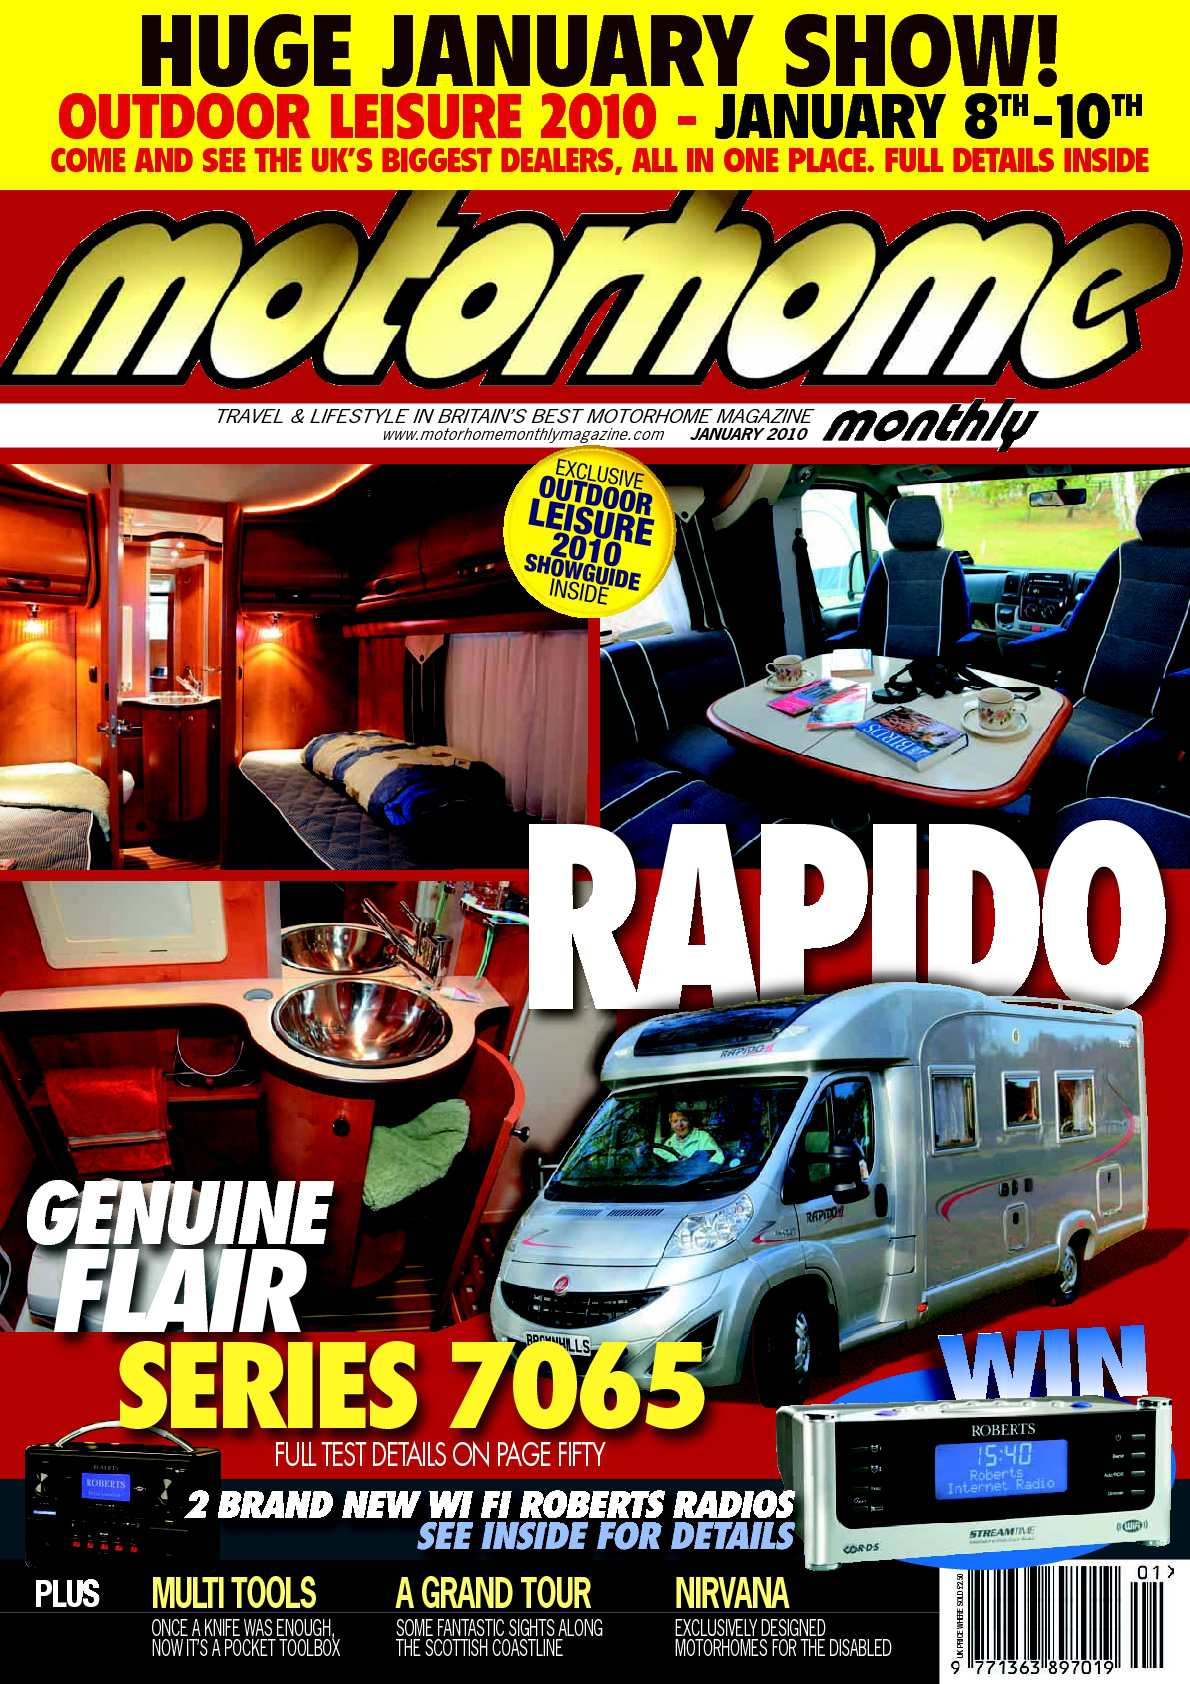 Calamo January 2010 Motorhome Monthly Magazine Marlin Model 9 Camp Carbine Schematic Car Tuning